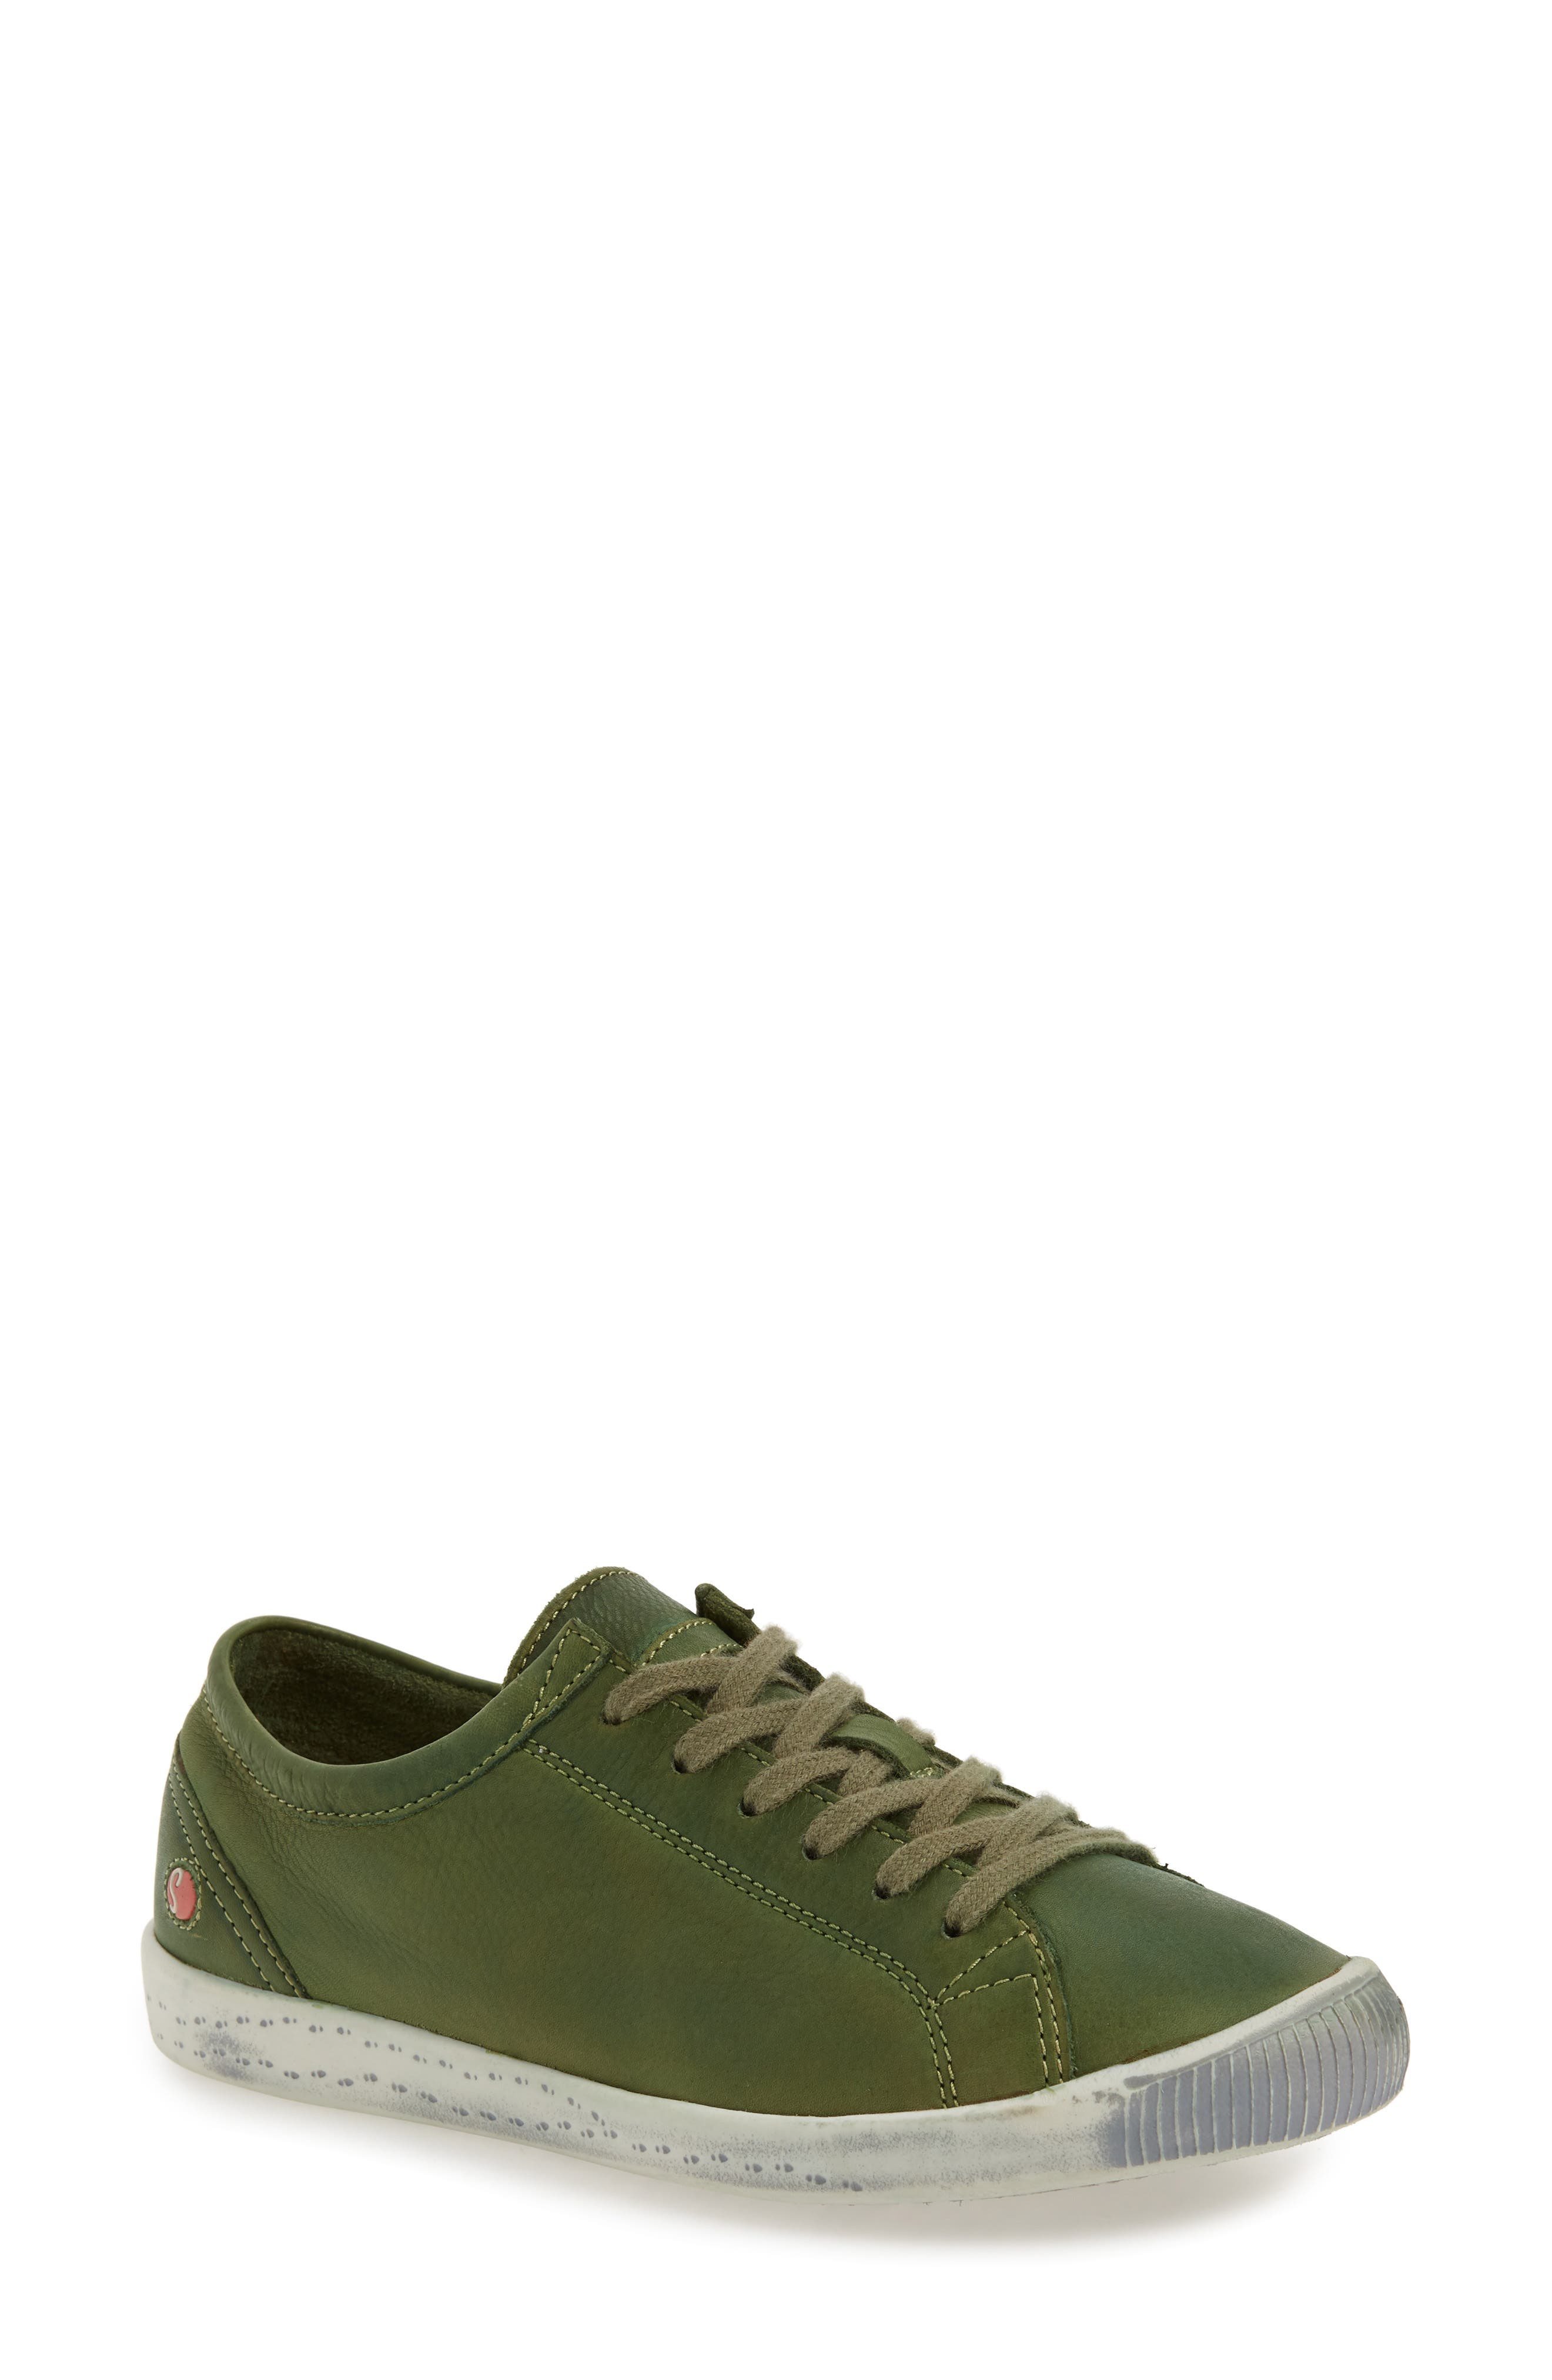 Isla Distressed Sneaker,                             Main thumbnail 1, color,                             Forest Green Washed Leather